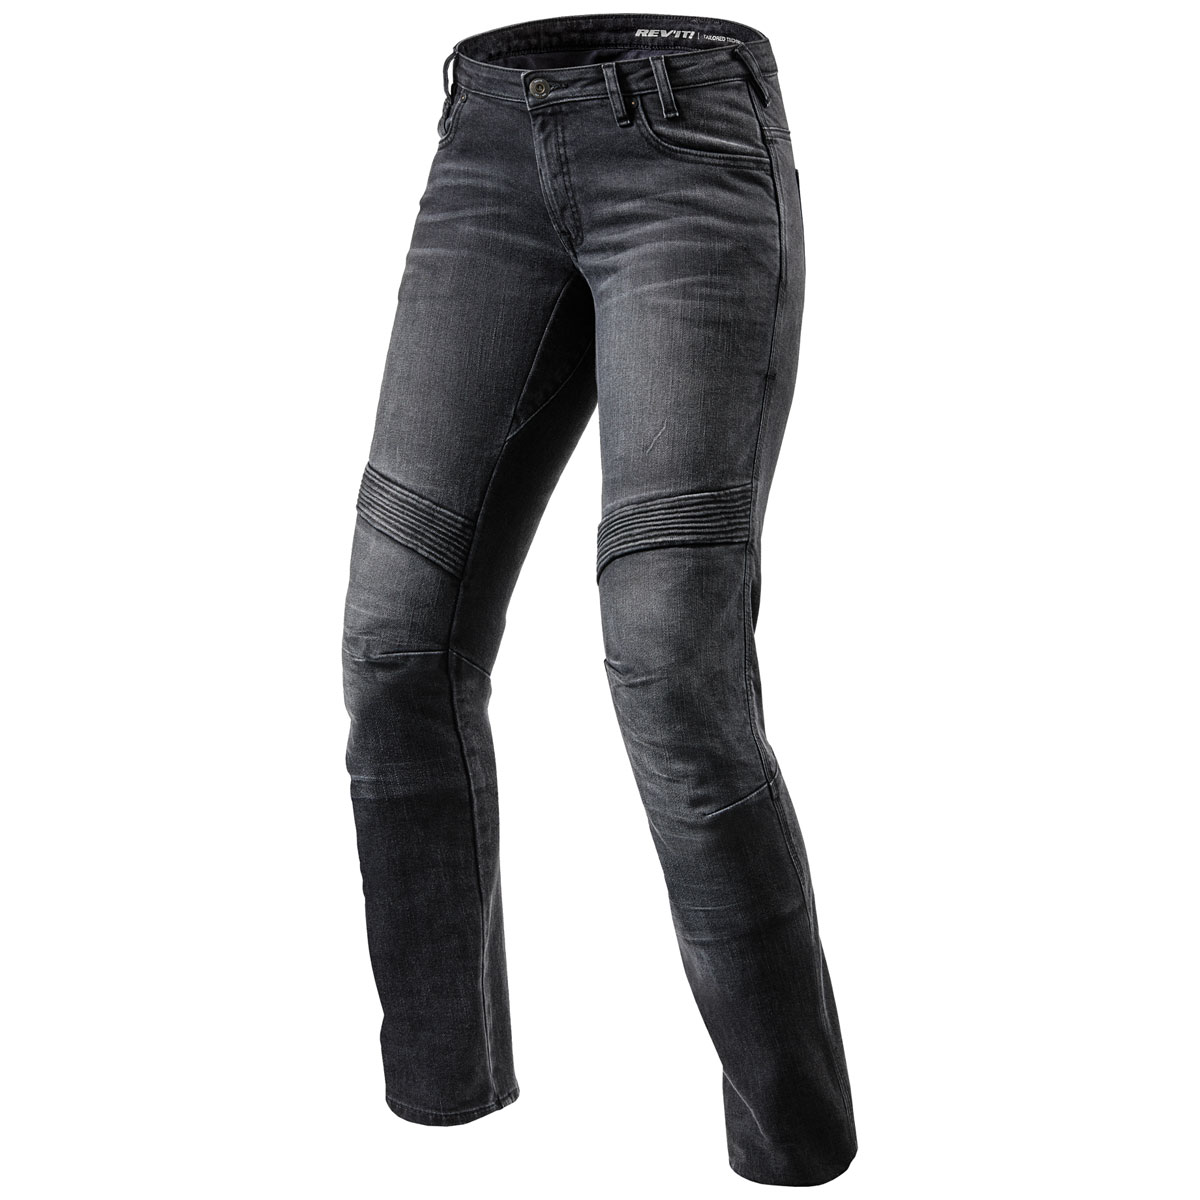 REV′IT! Women's Moto Black Jeans